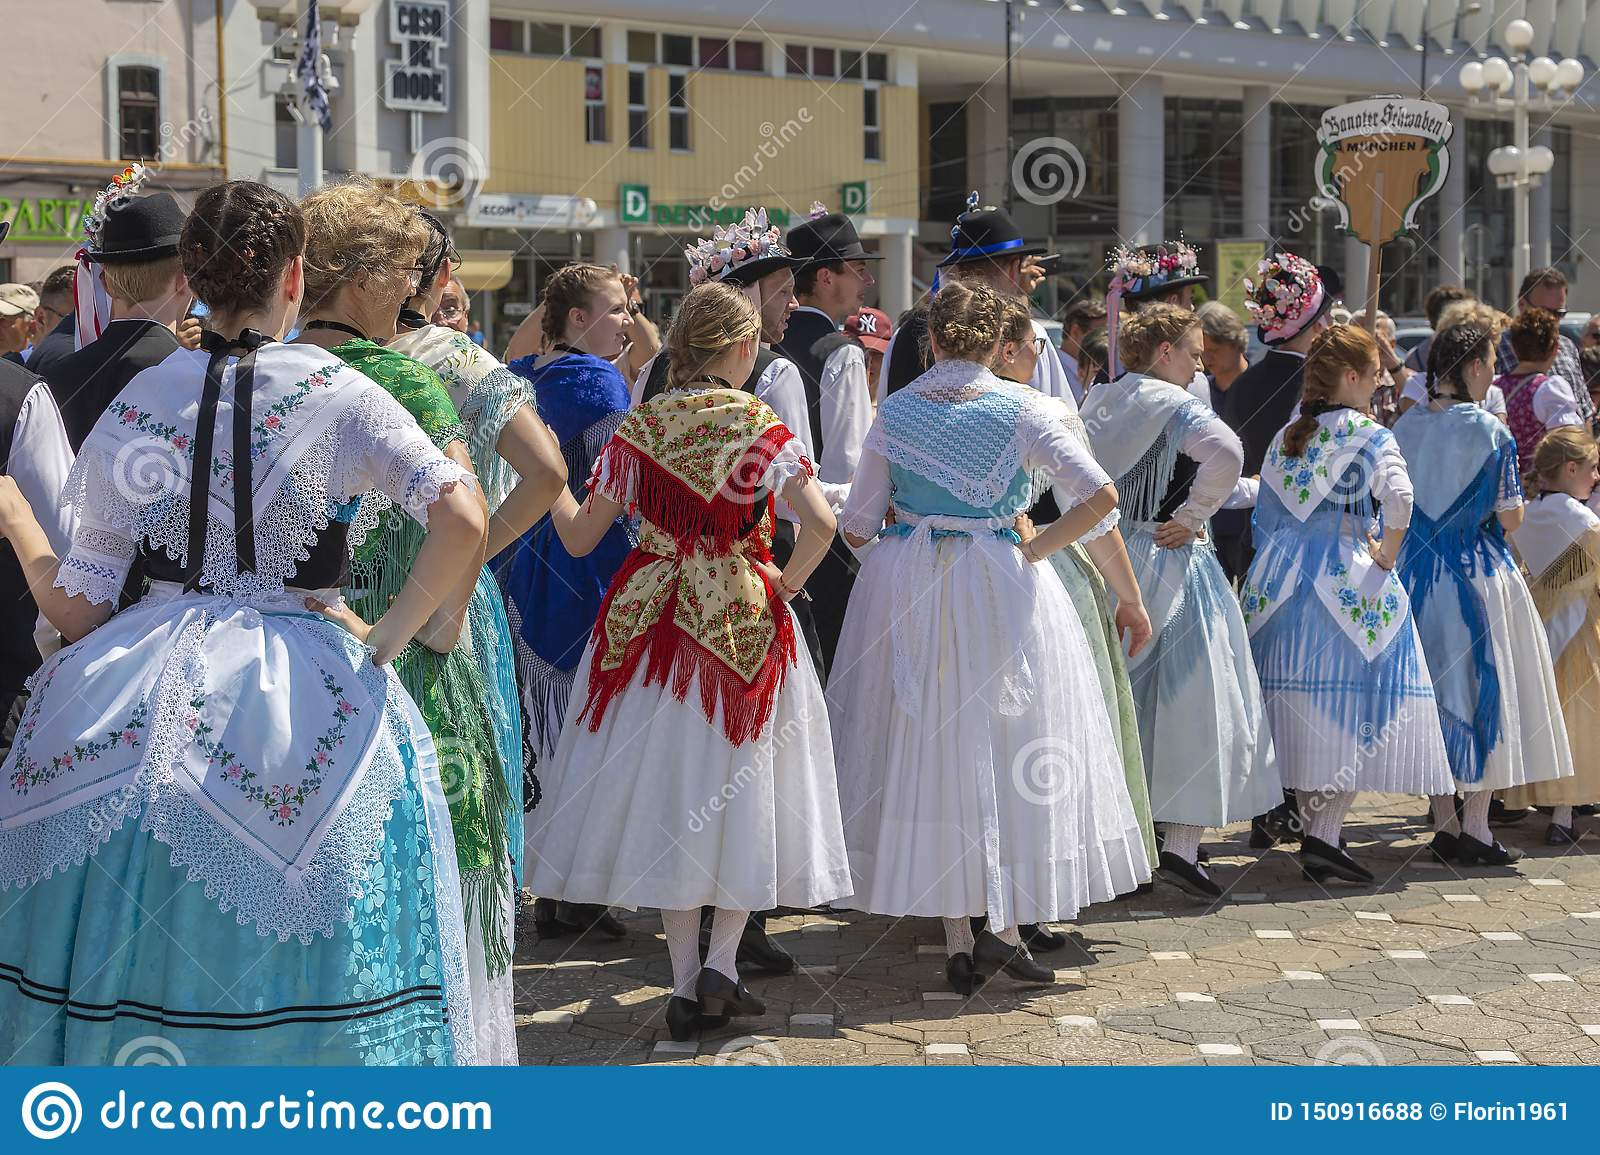 Parade of the Swabian folk costumes